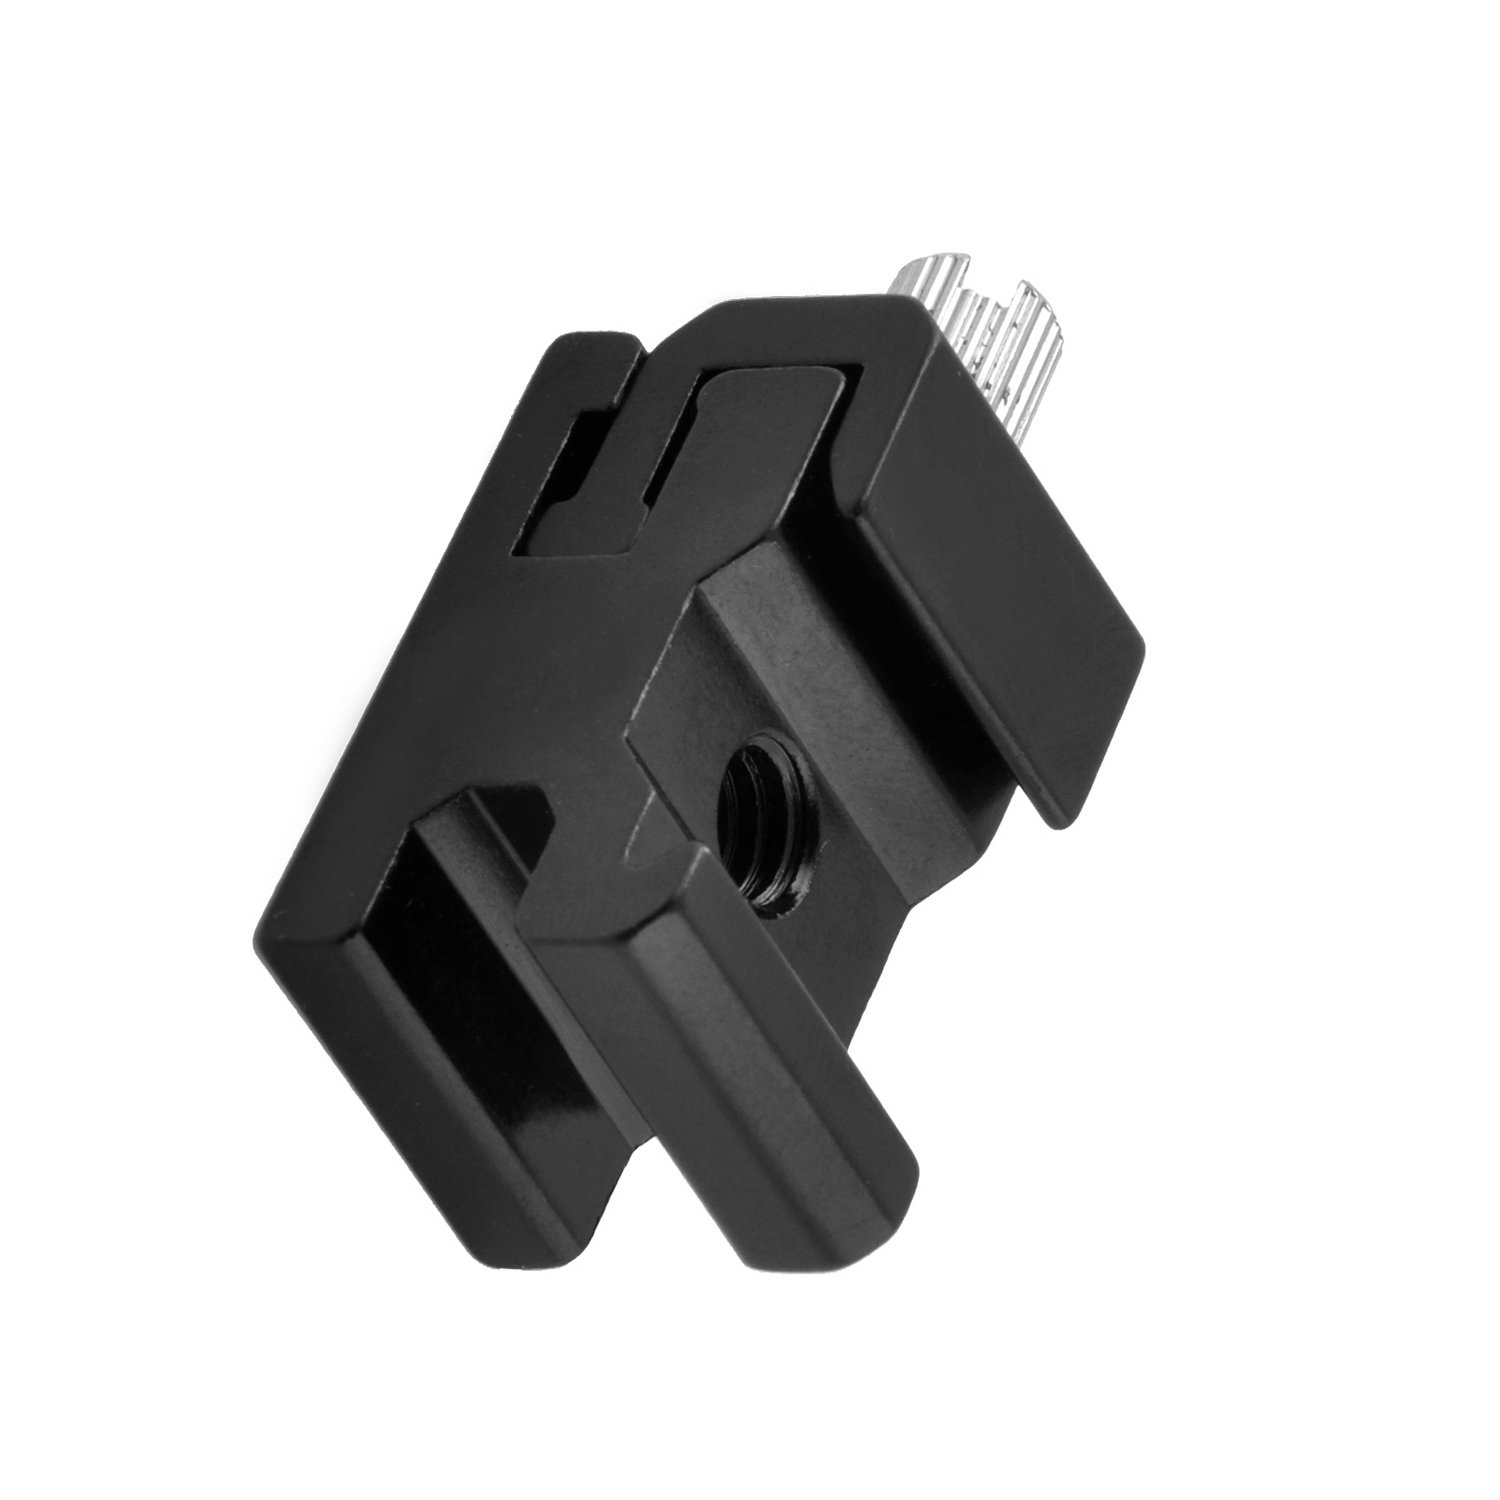 pangshi Black Metal Cold Shoe Flash Stand Adapter with 1/4-inch -20 Tripod Screw (4 Packs)